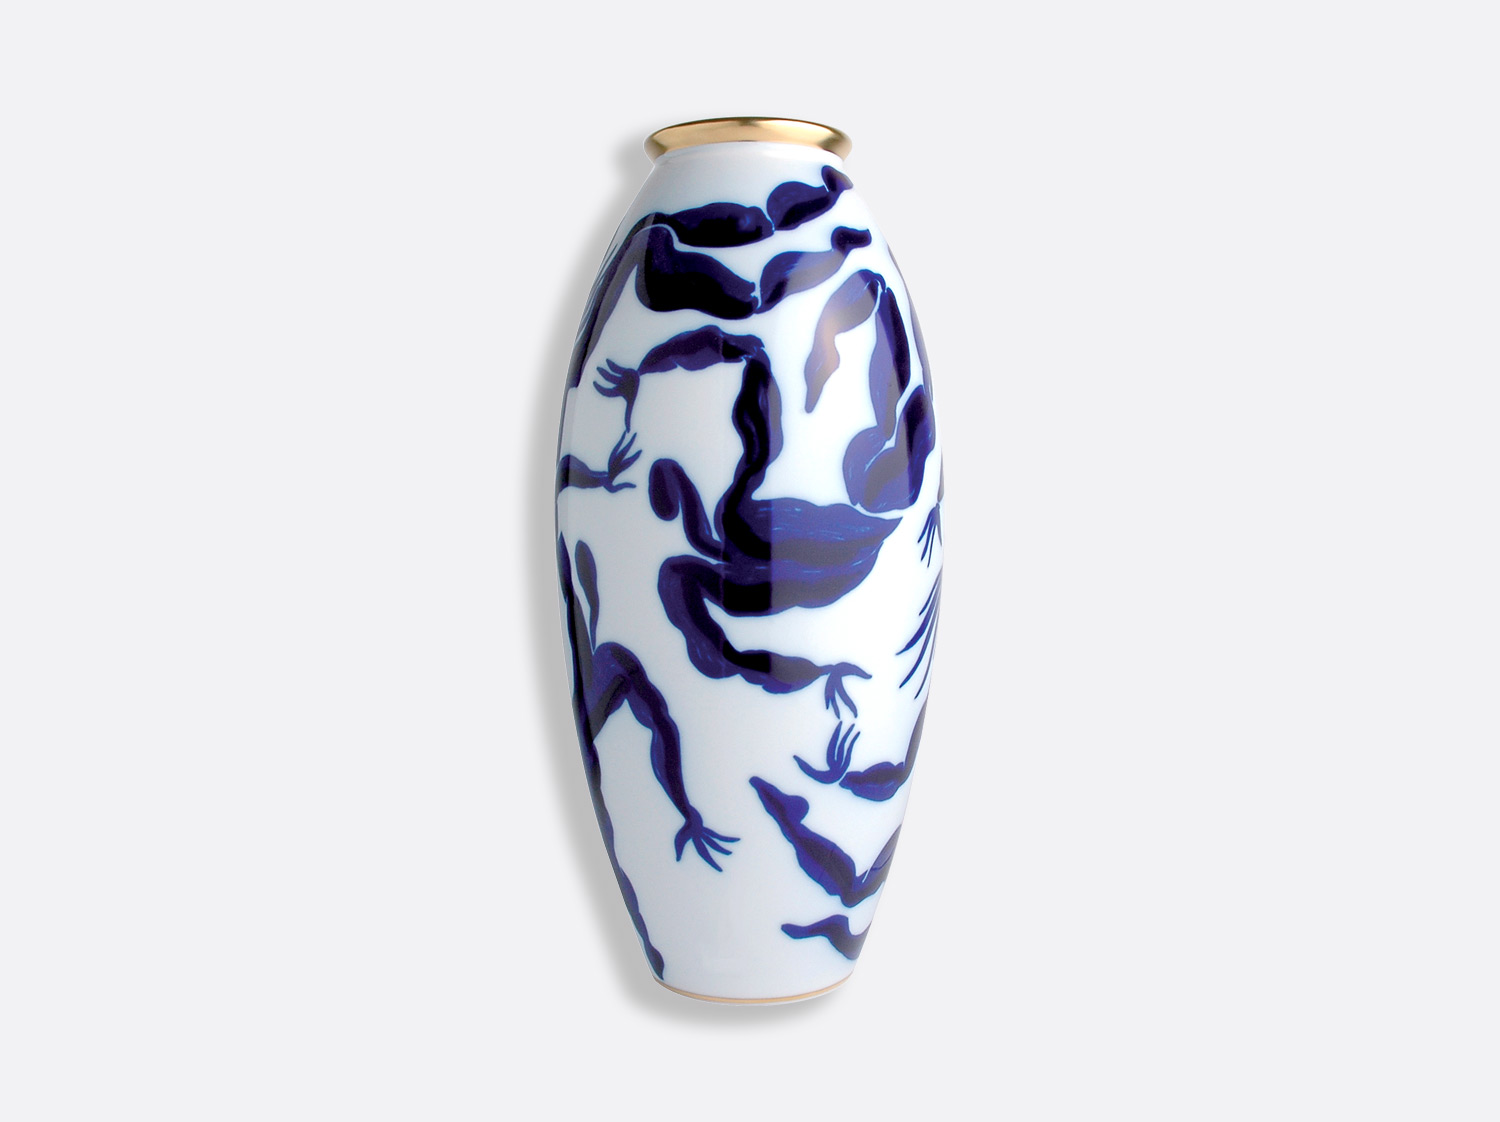 Vase Bacchanale H.42 cm en porcelaine de la collection Bacchanale Bernardaud